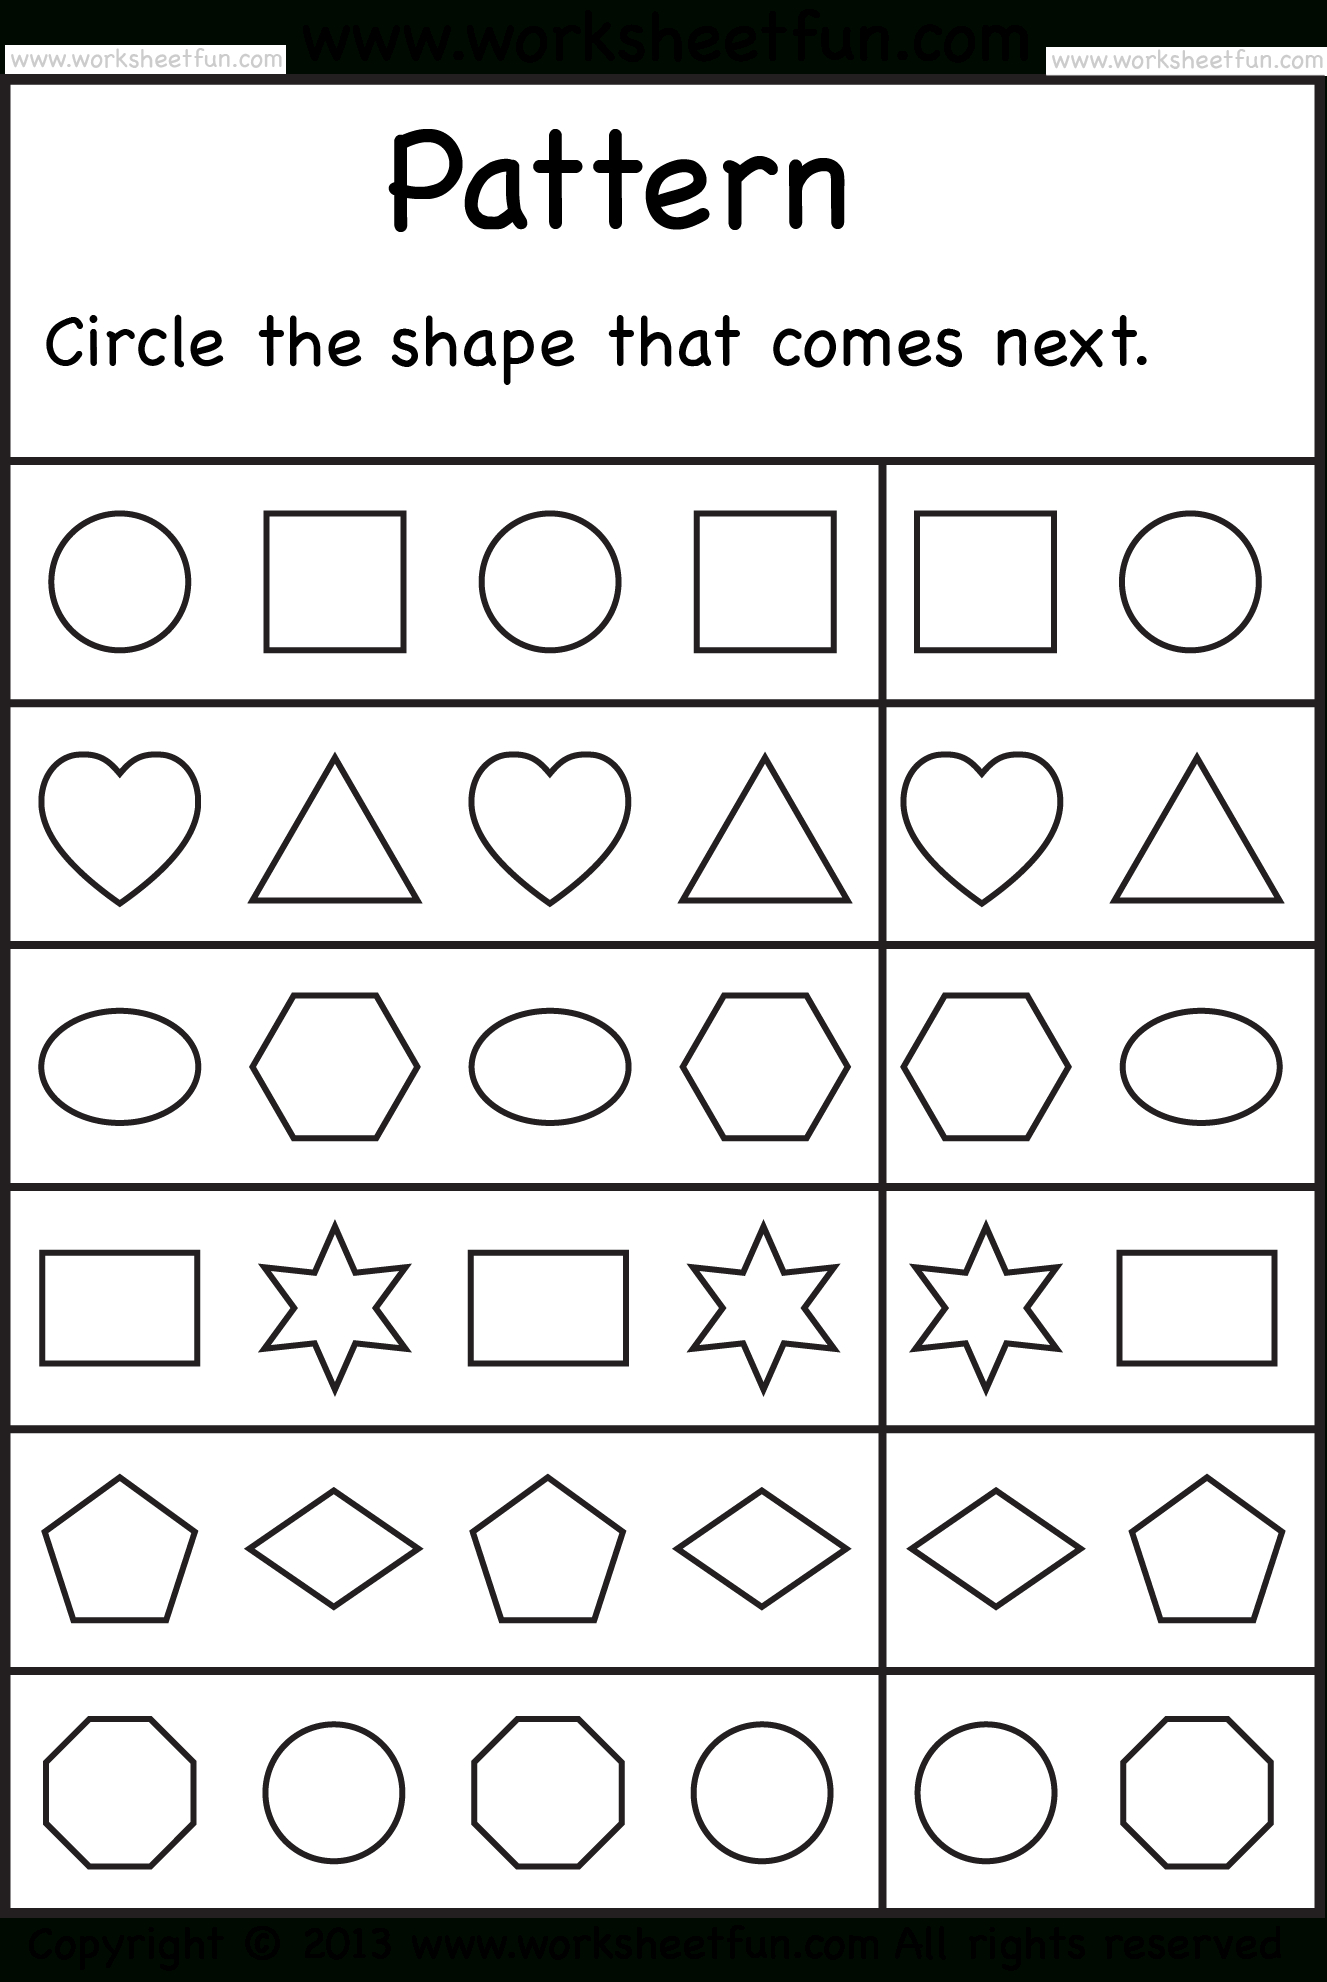 Free Printable Worksheets – Worksheetfun / Free Printable | Free Printable Worksheets For Kindergarten